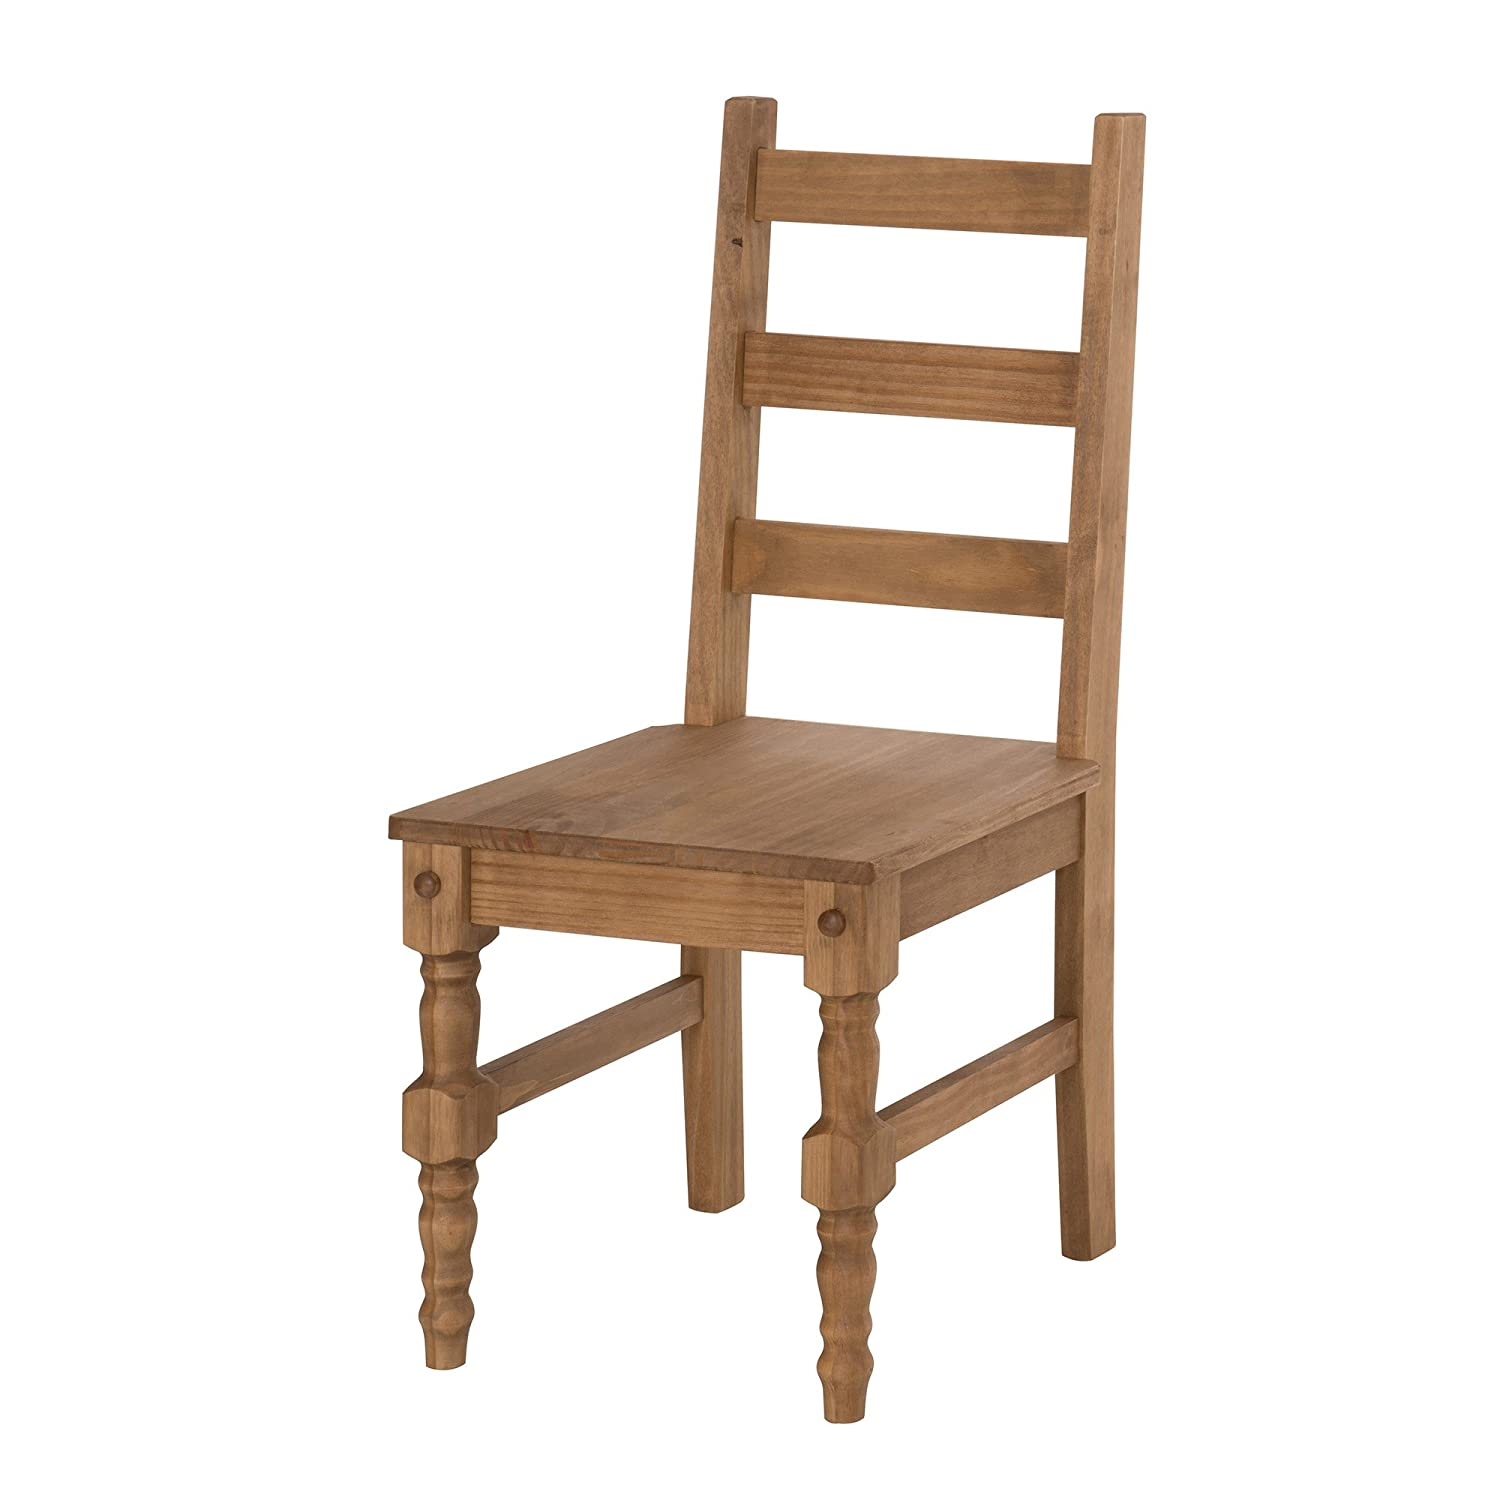 Wood Manhattan Comfort Jay Collection Traditional Wooden Dining Chair with Trim Finish, Green Wood